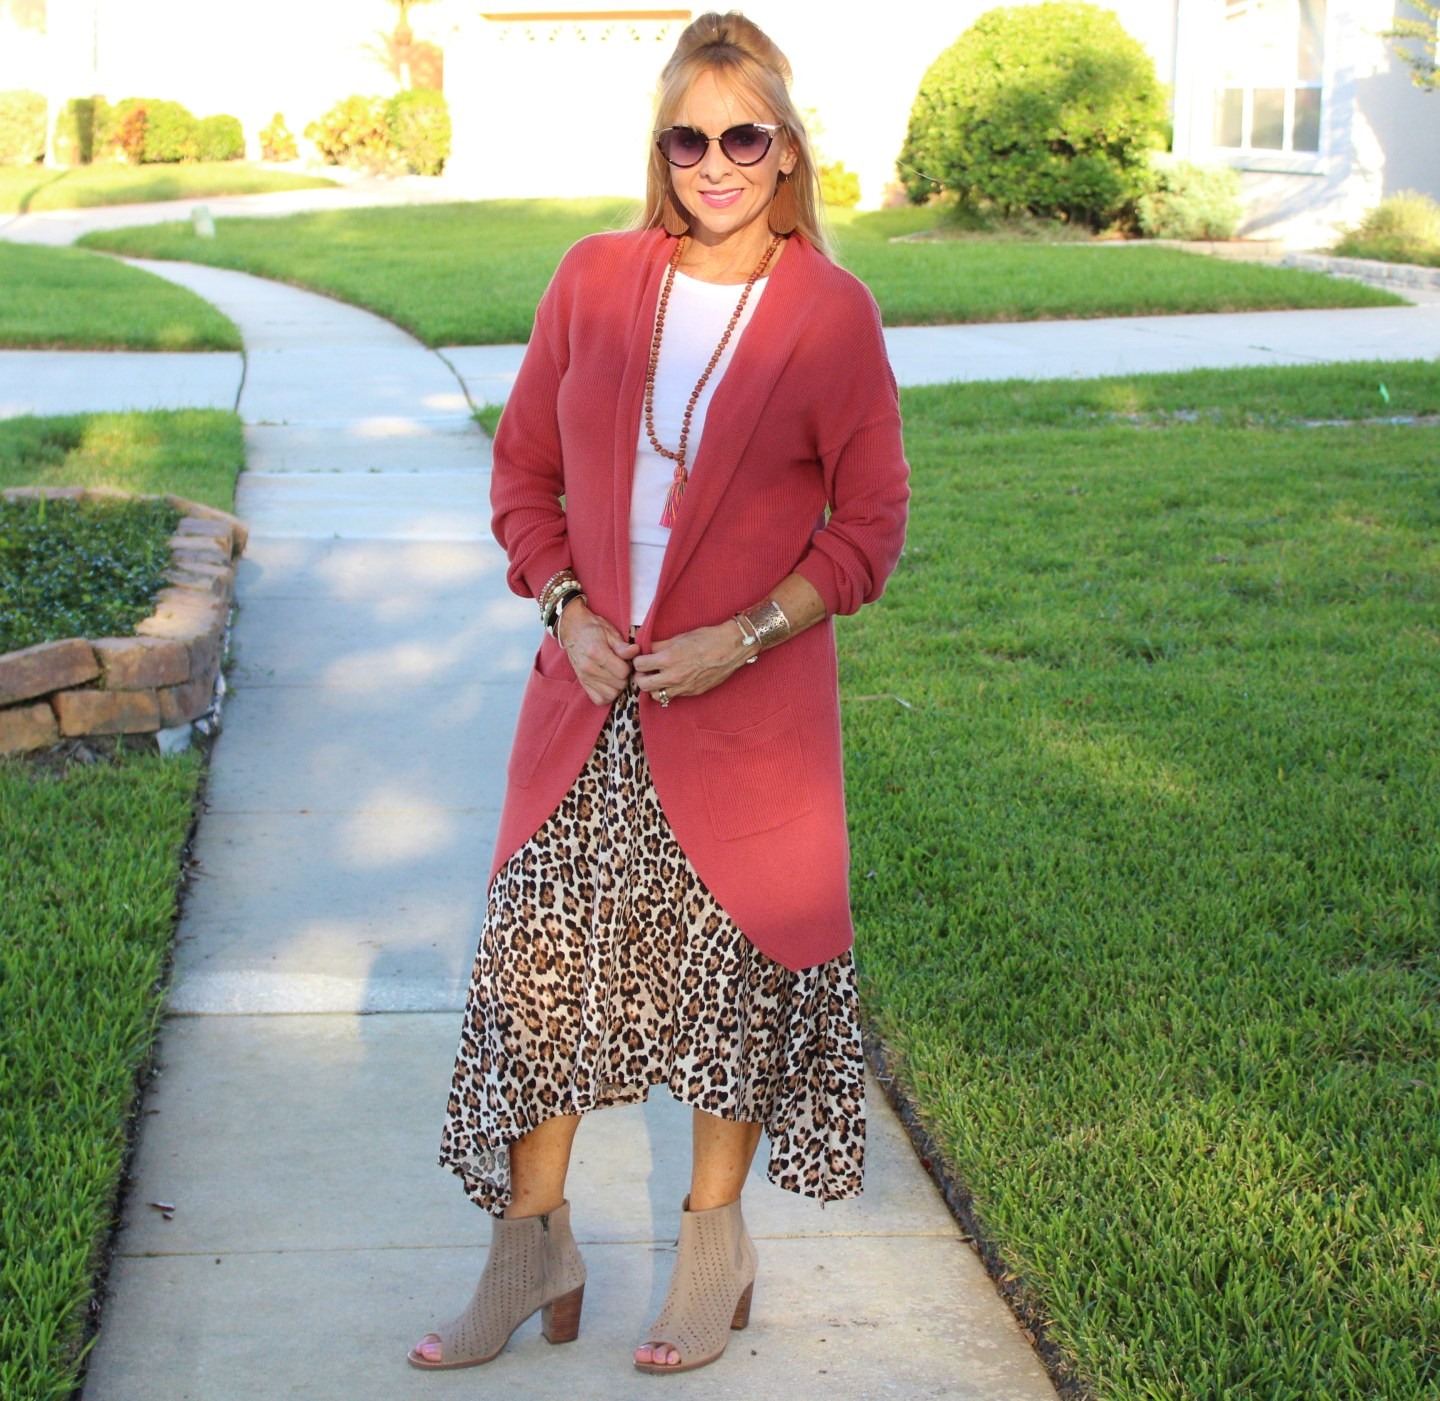 Leopard skirt + Long Cardigan